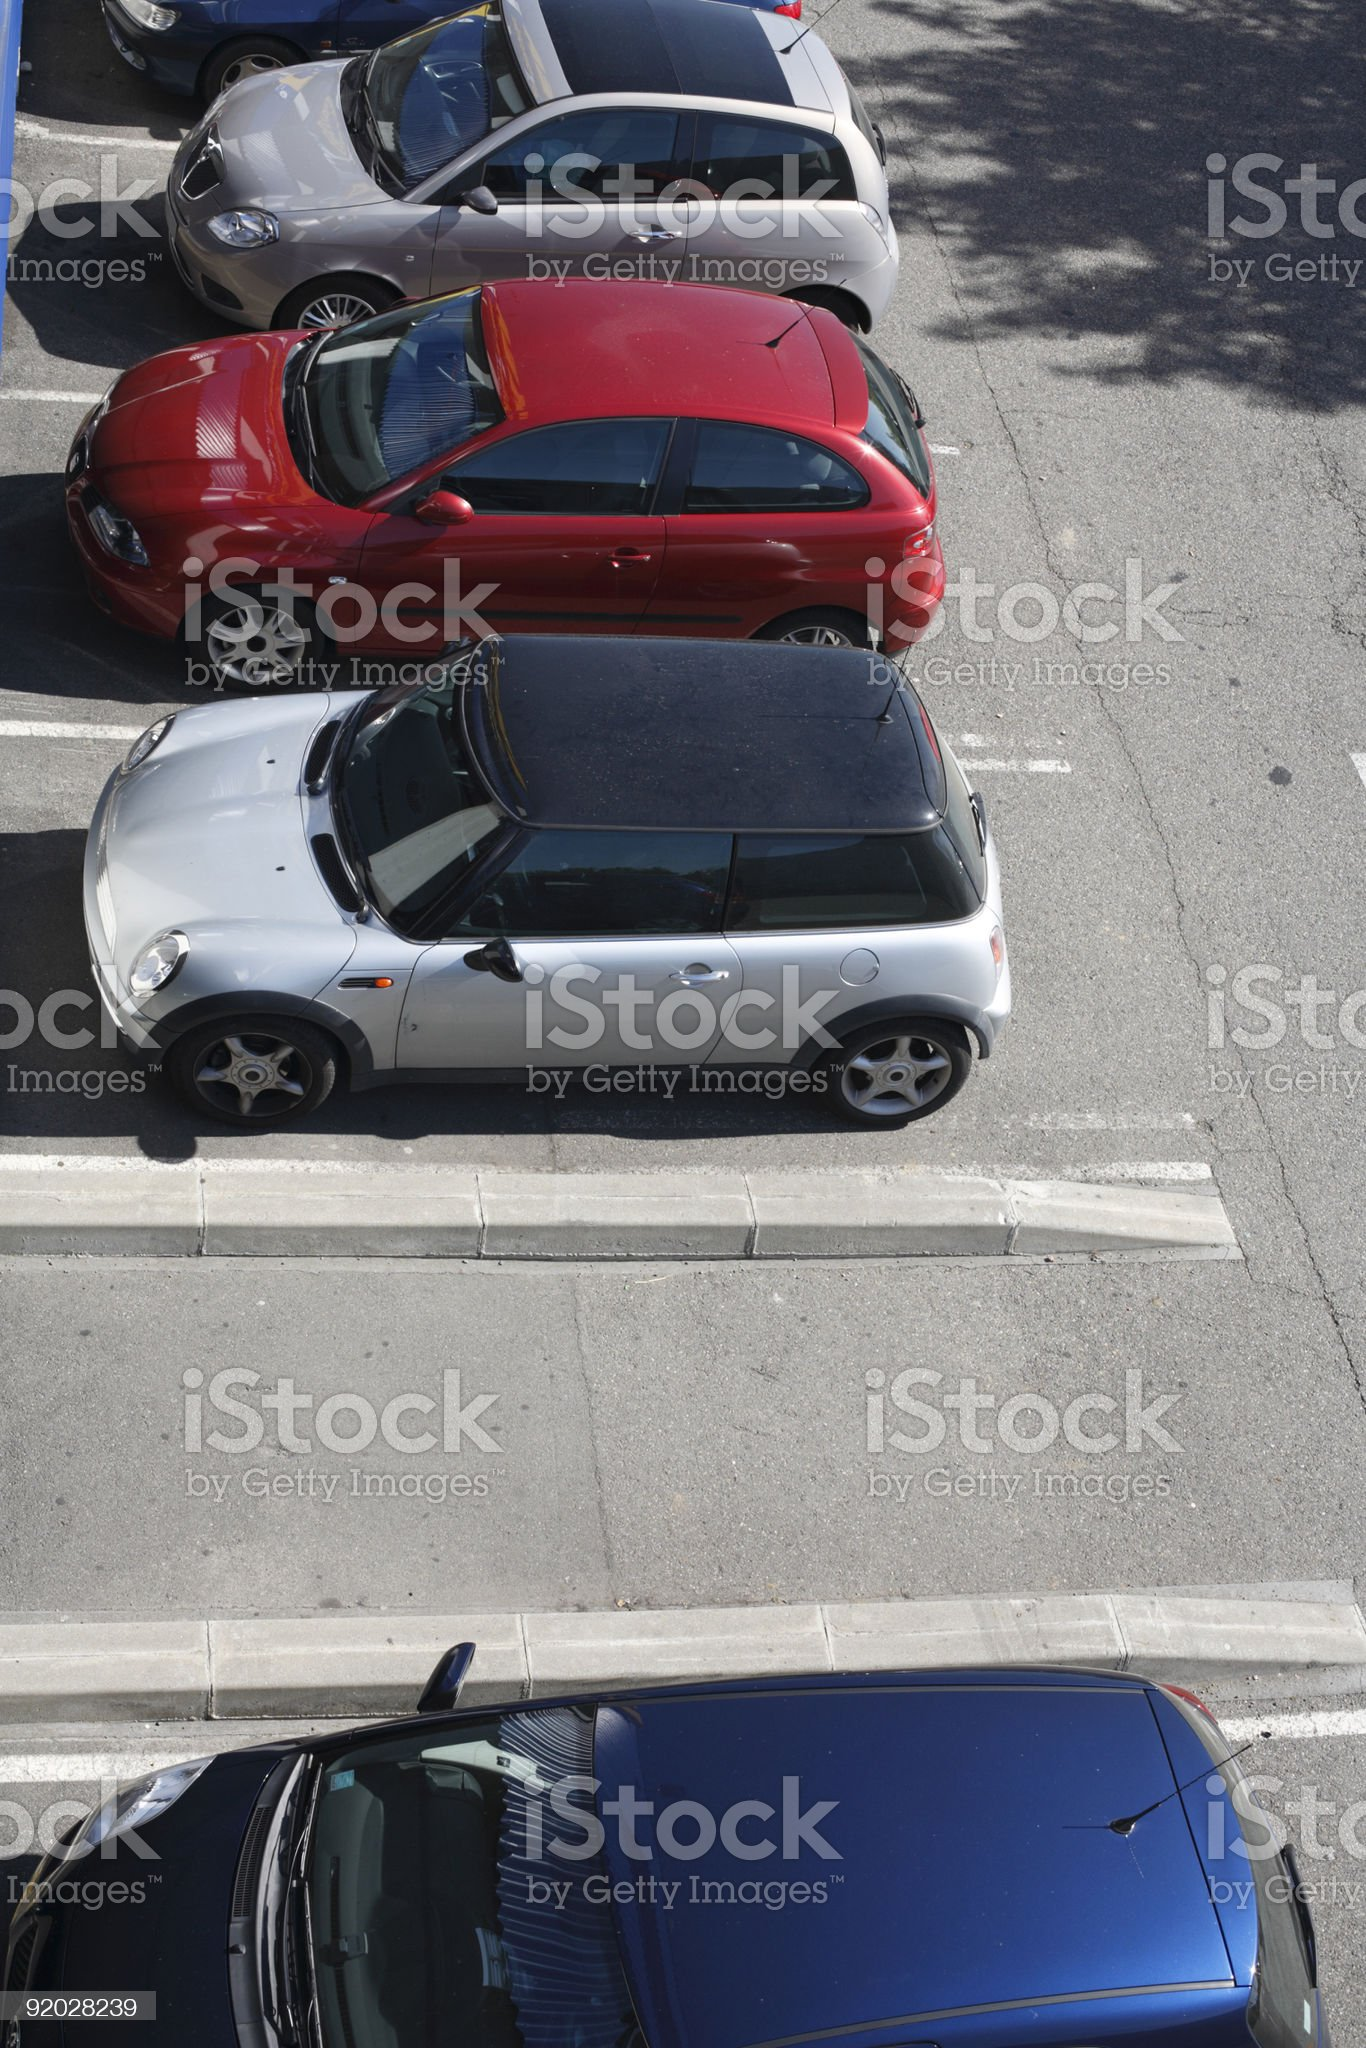 Empty Car Parking Space royalty-free stock photo